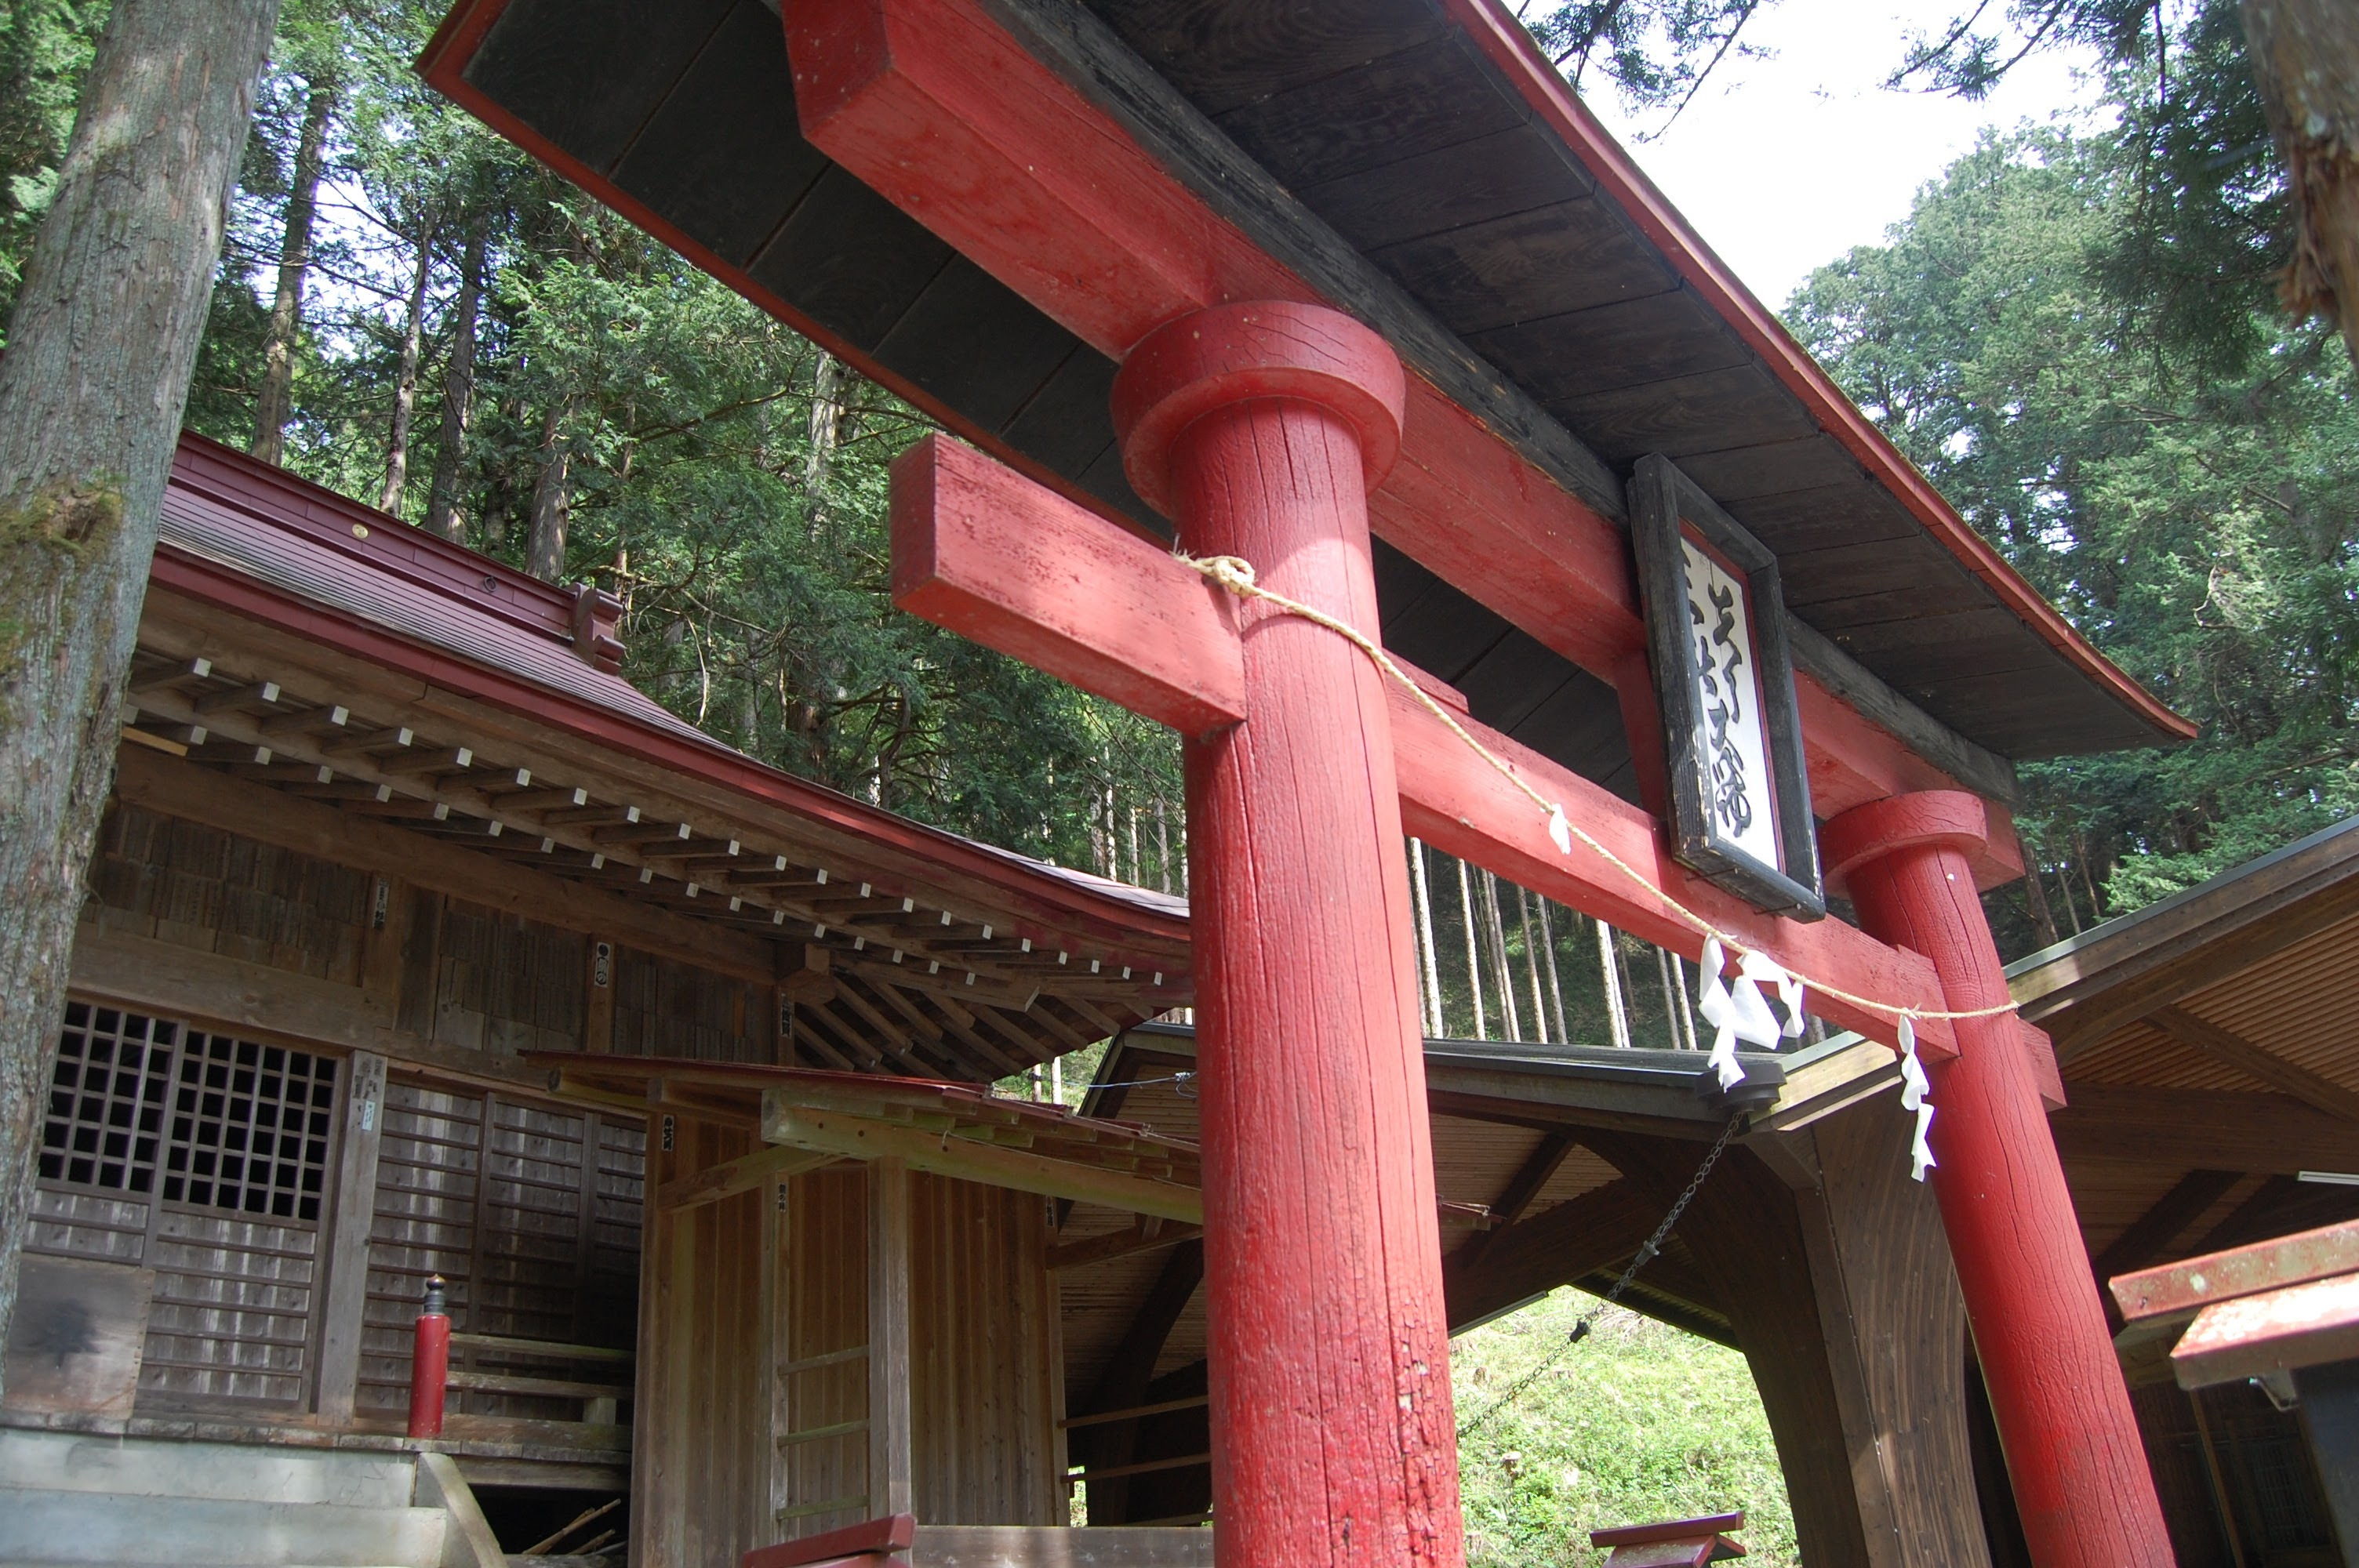 In Japan there is a temple dedicated to the female breast and its beautiful